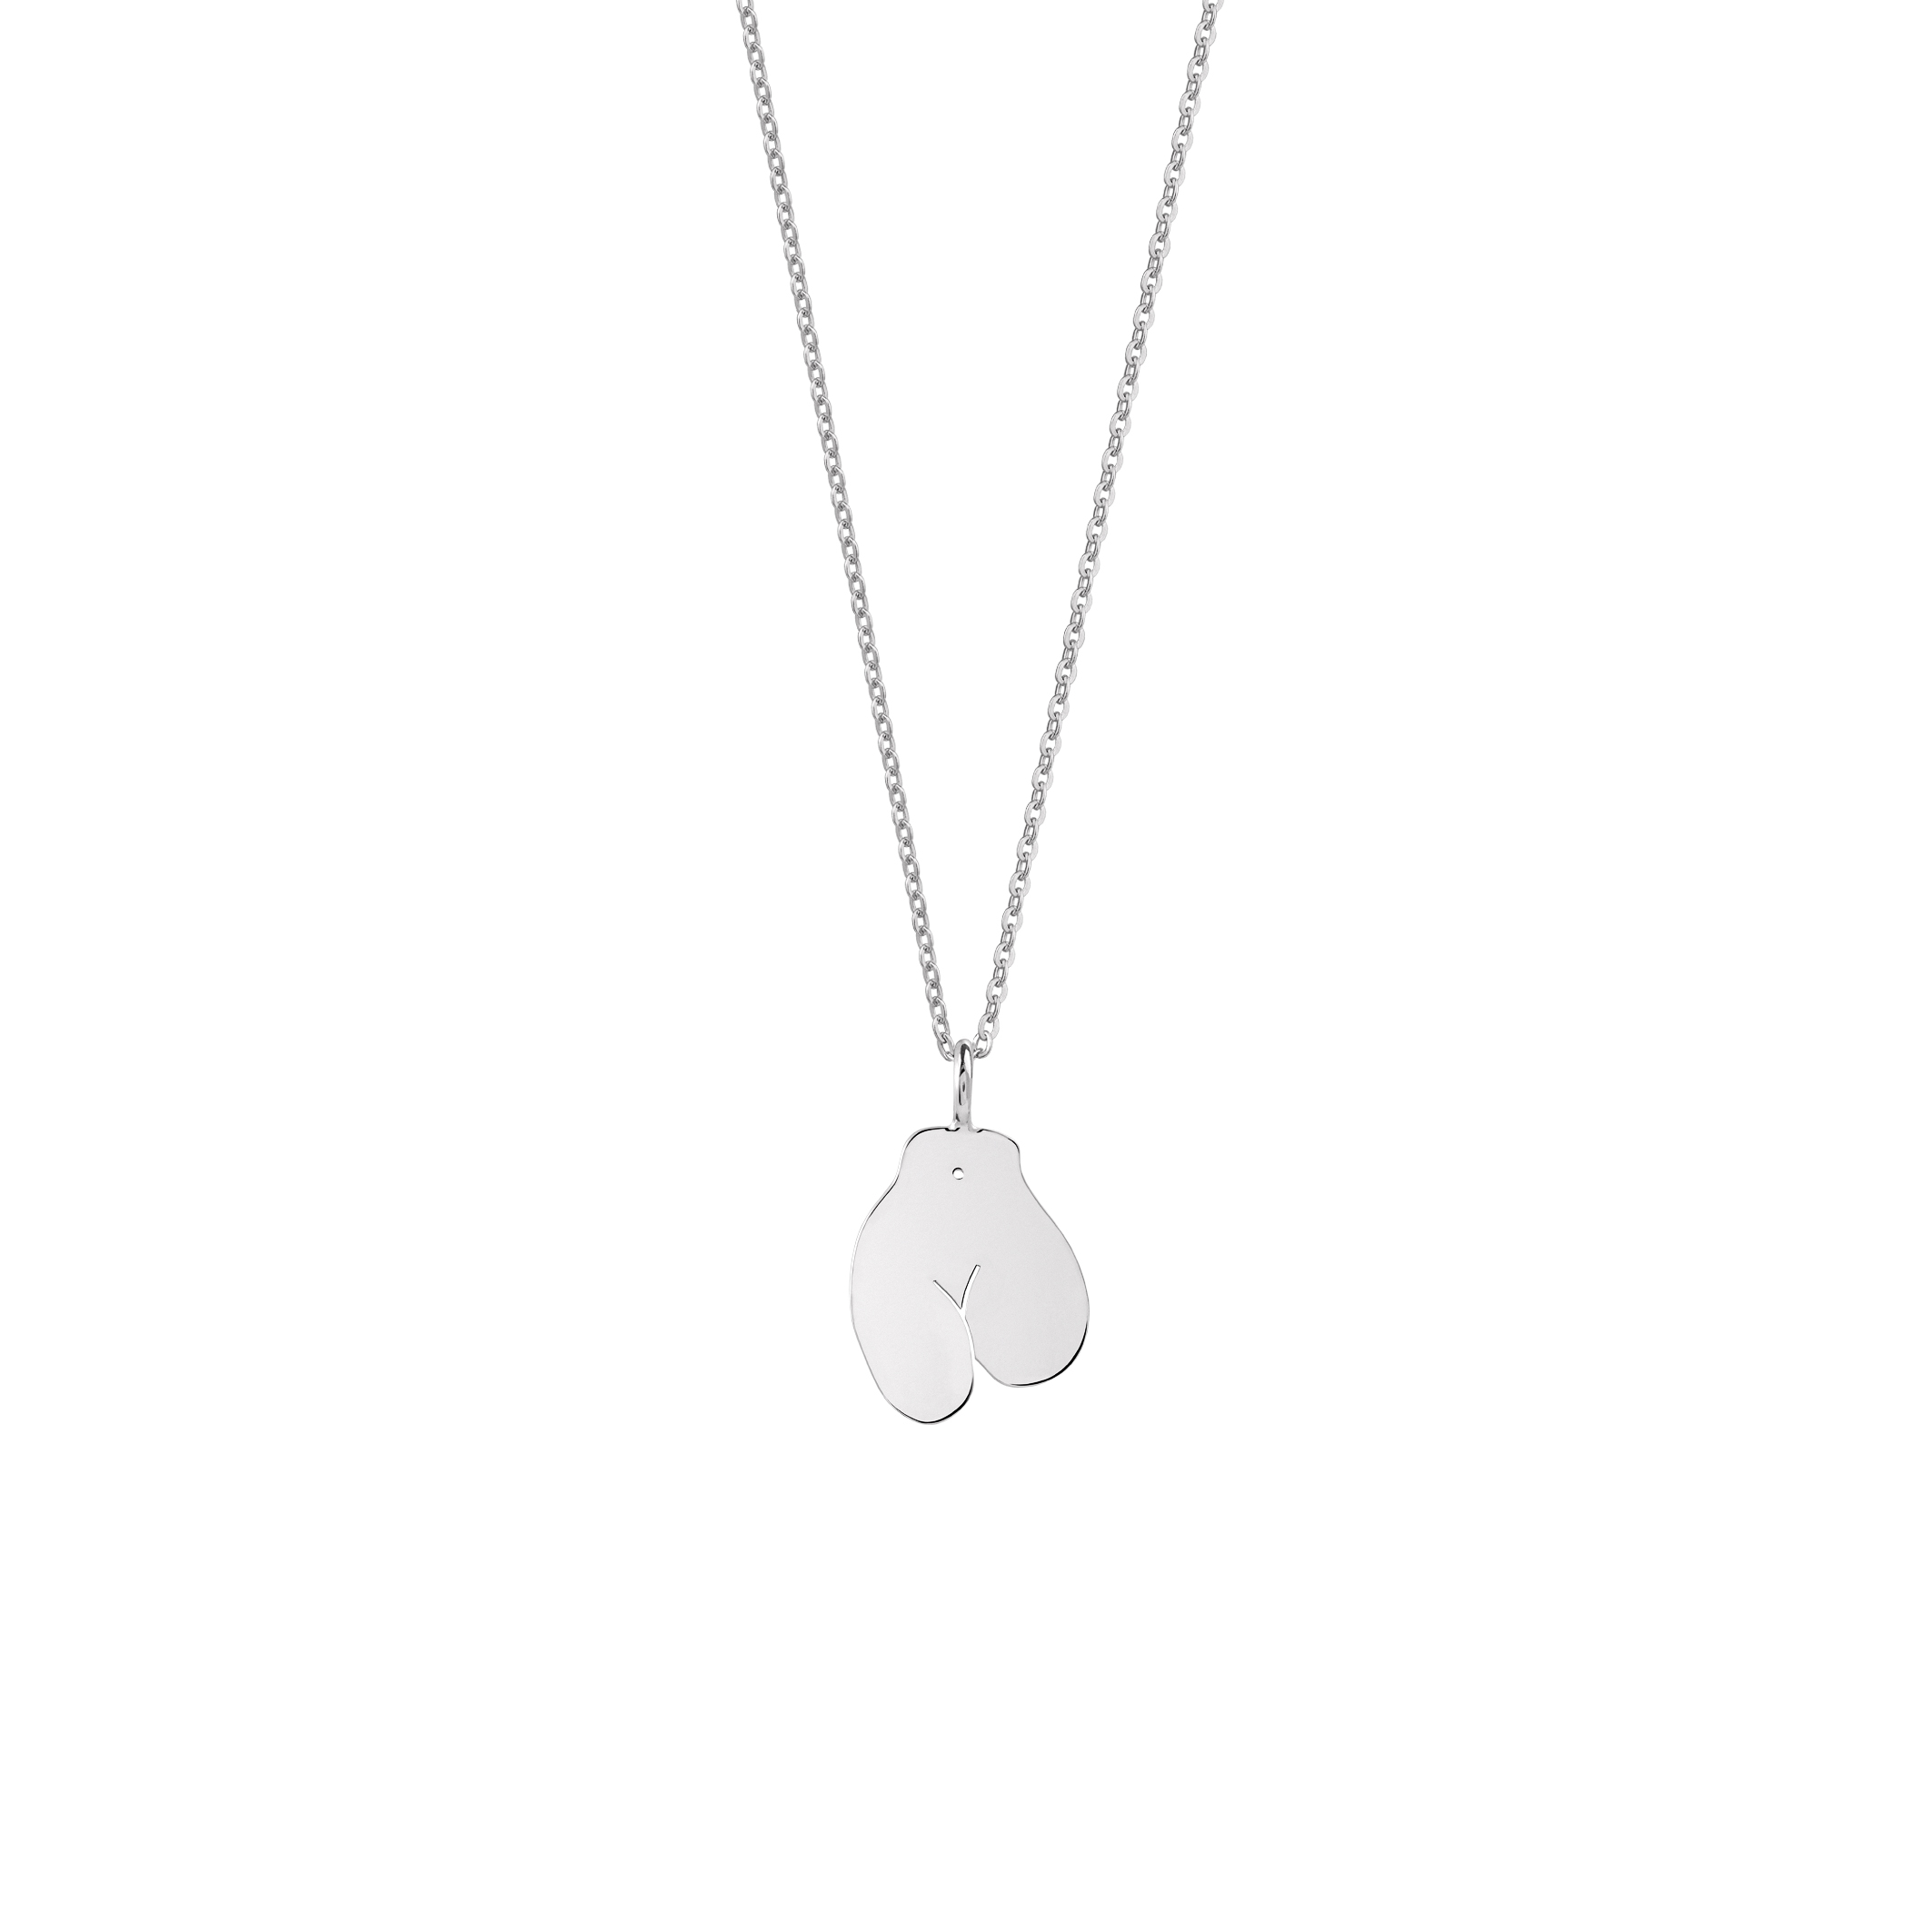 Limited Edition / Féminin 2 Necklace Silver